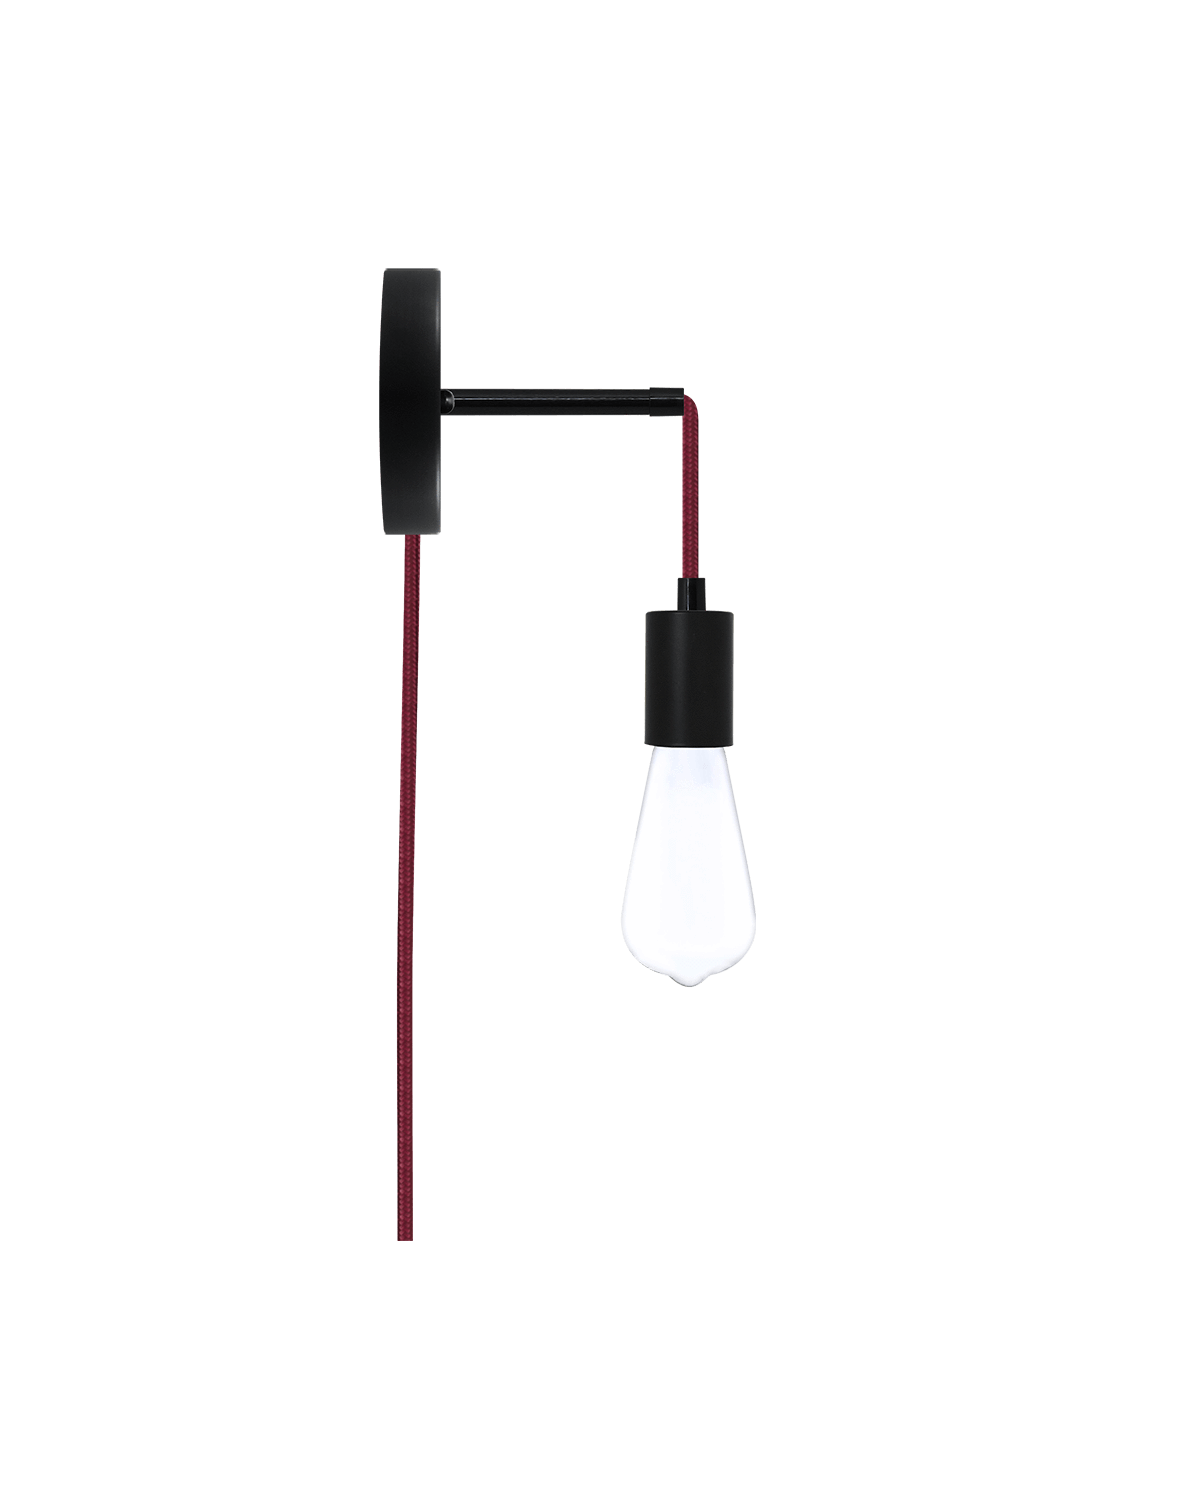 Plug-in Adjustable Wall Sconce: Black and Wine Hangout Lighting